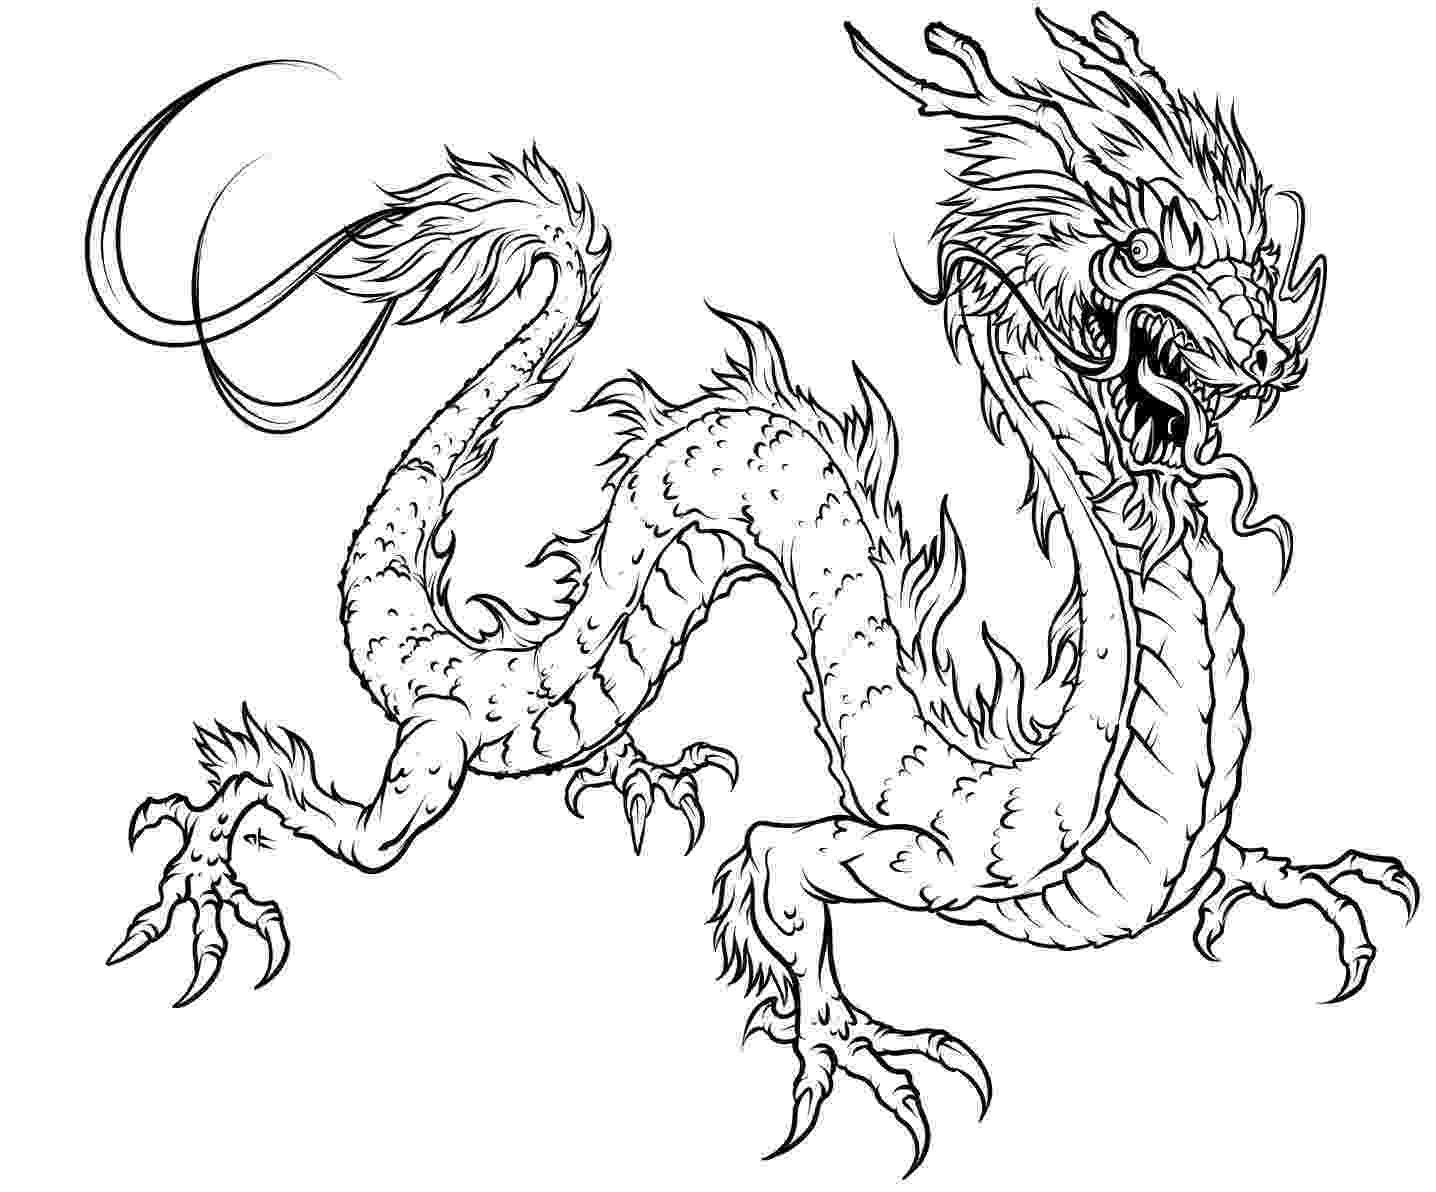 chinese dragon coloring sheet chinese dragon coloring pages to download and print for free sheet dragon coloring chinese